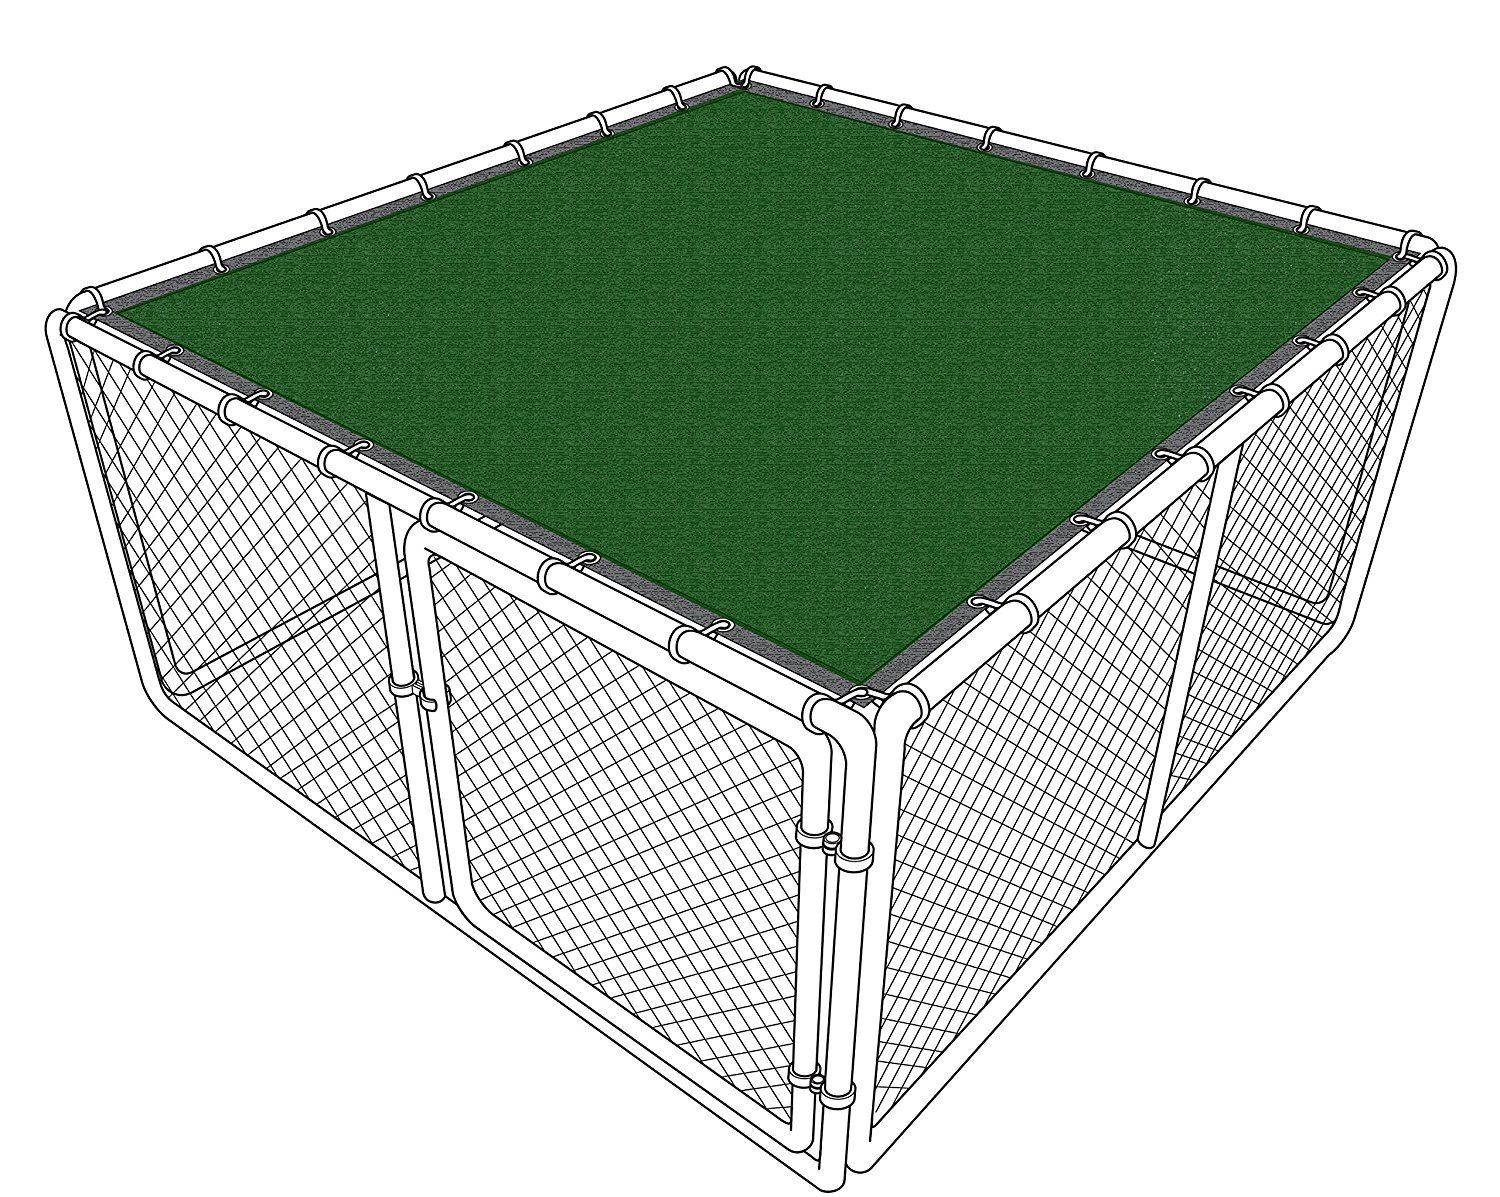 iDeal Fabrics Dog Kennel Cover (6x10)